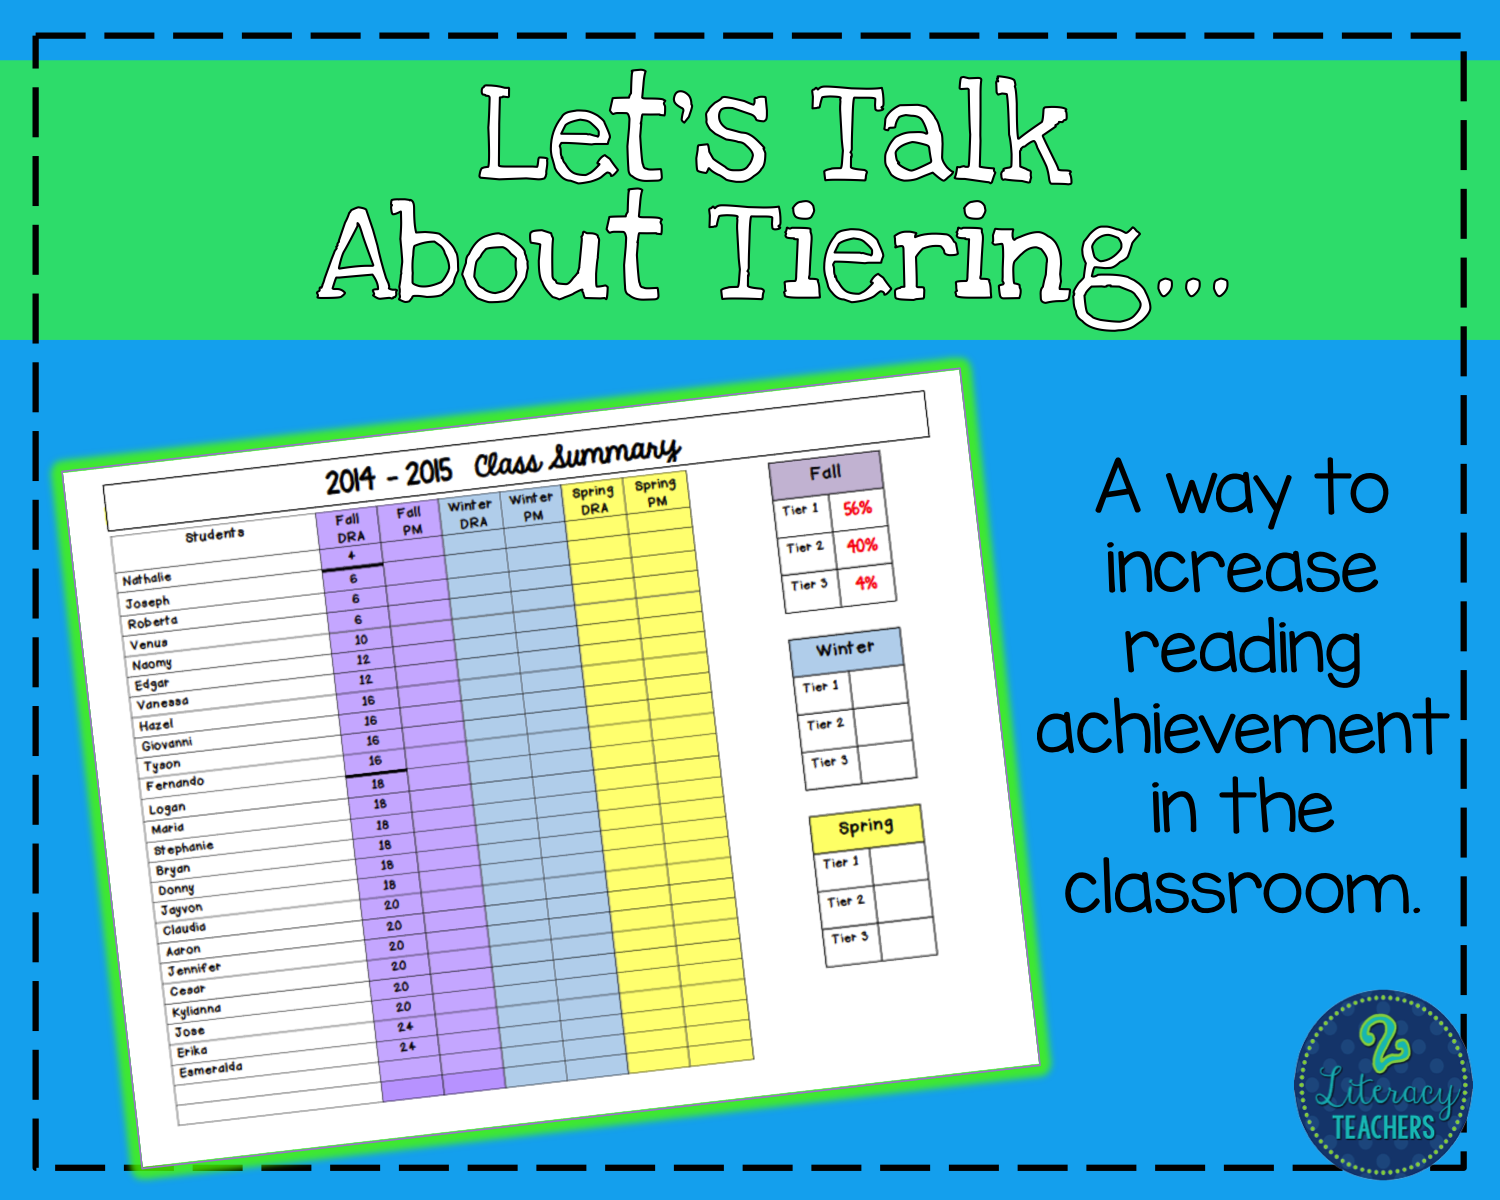 An easy way to increase reading achievement!  Percentages! Percentages!